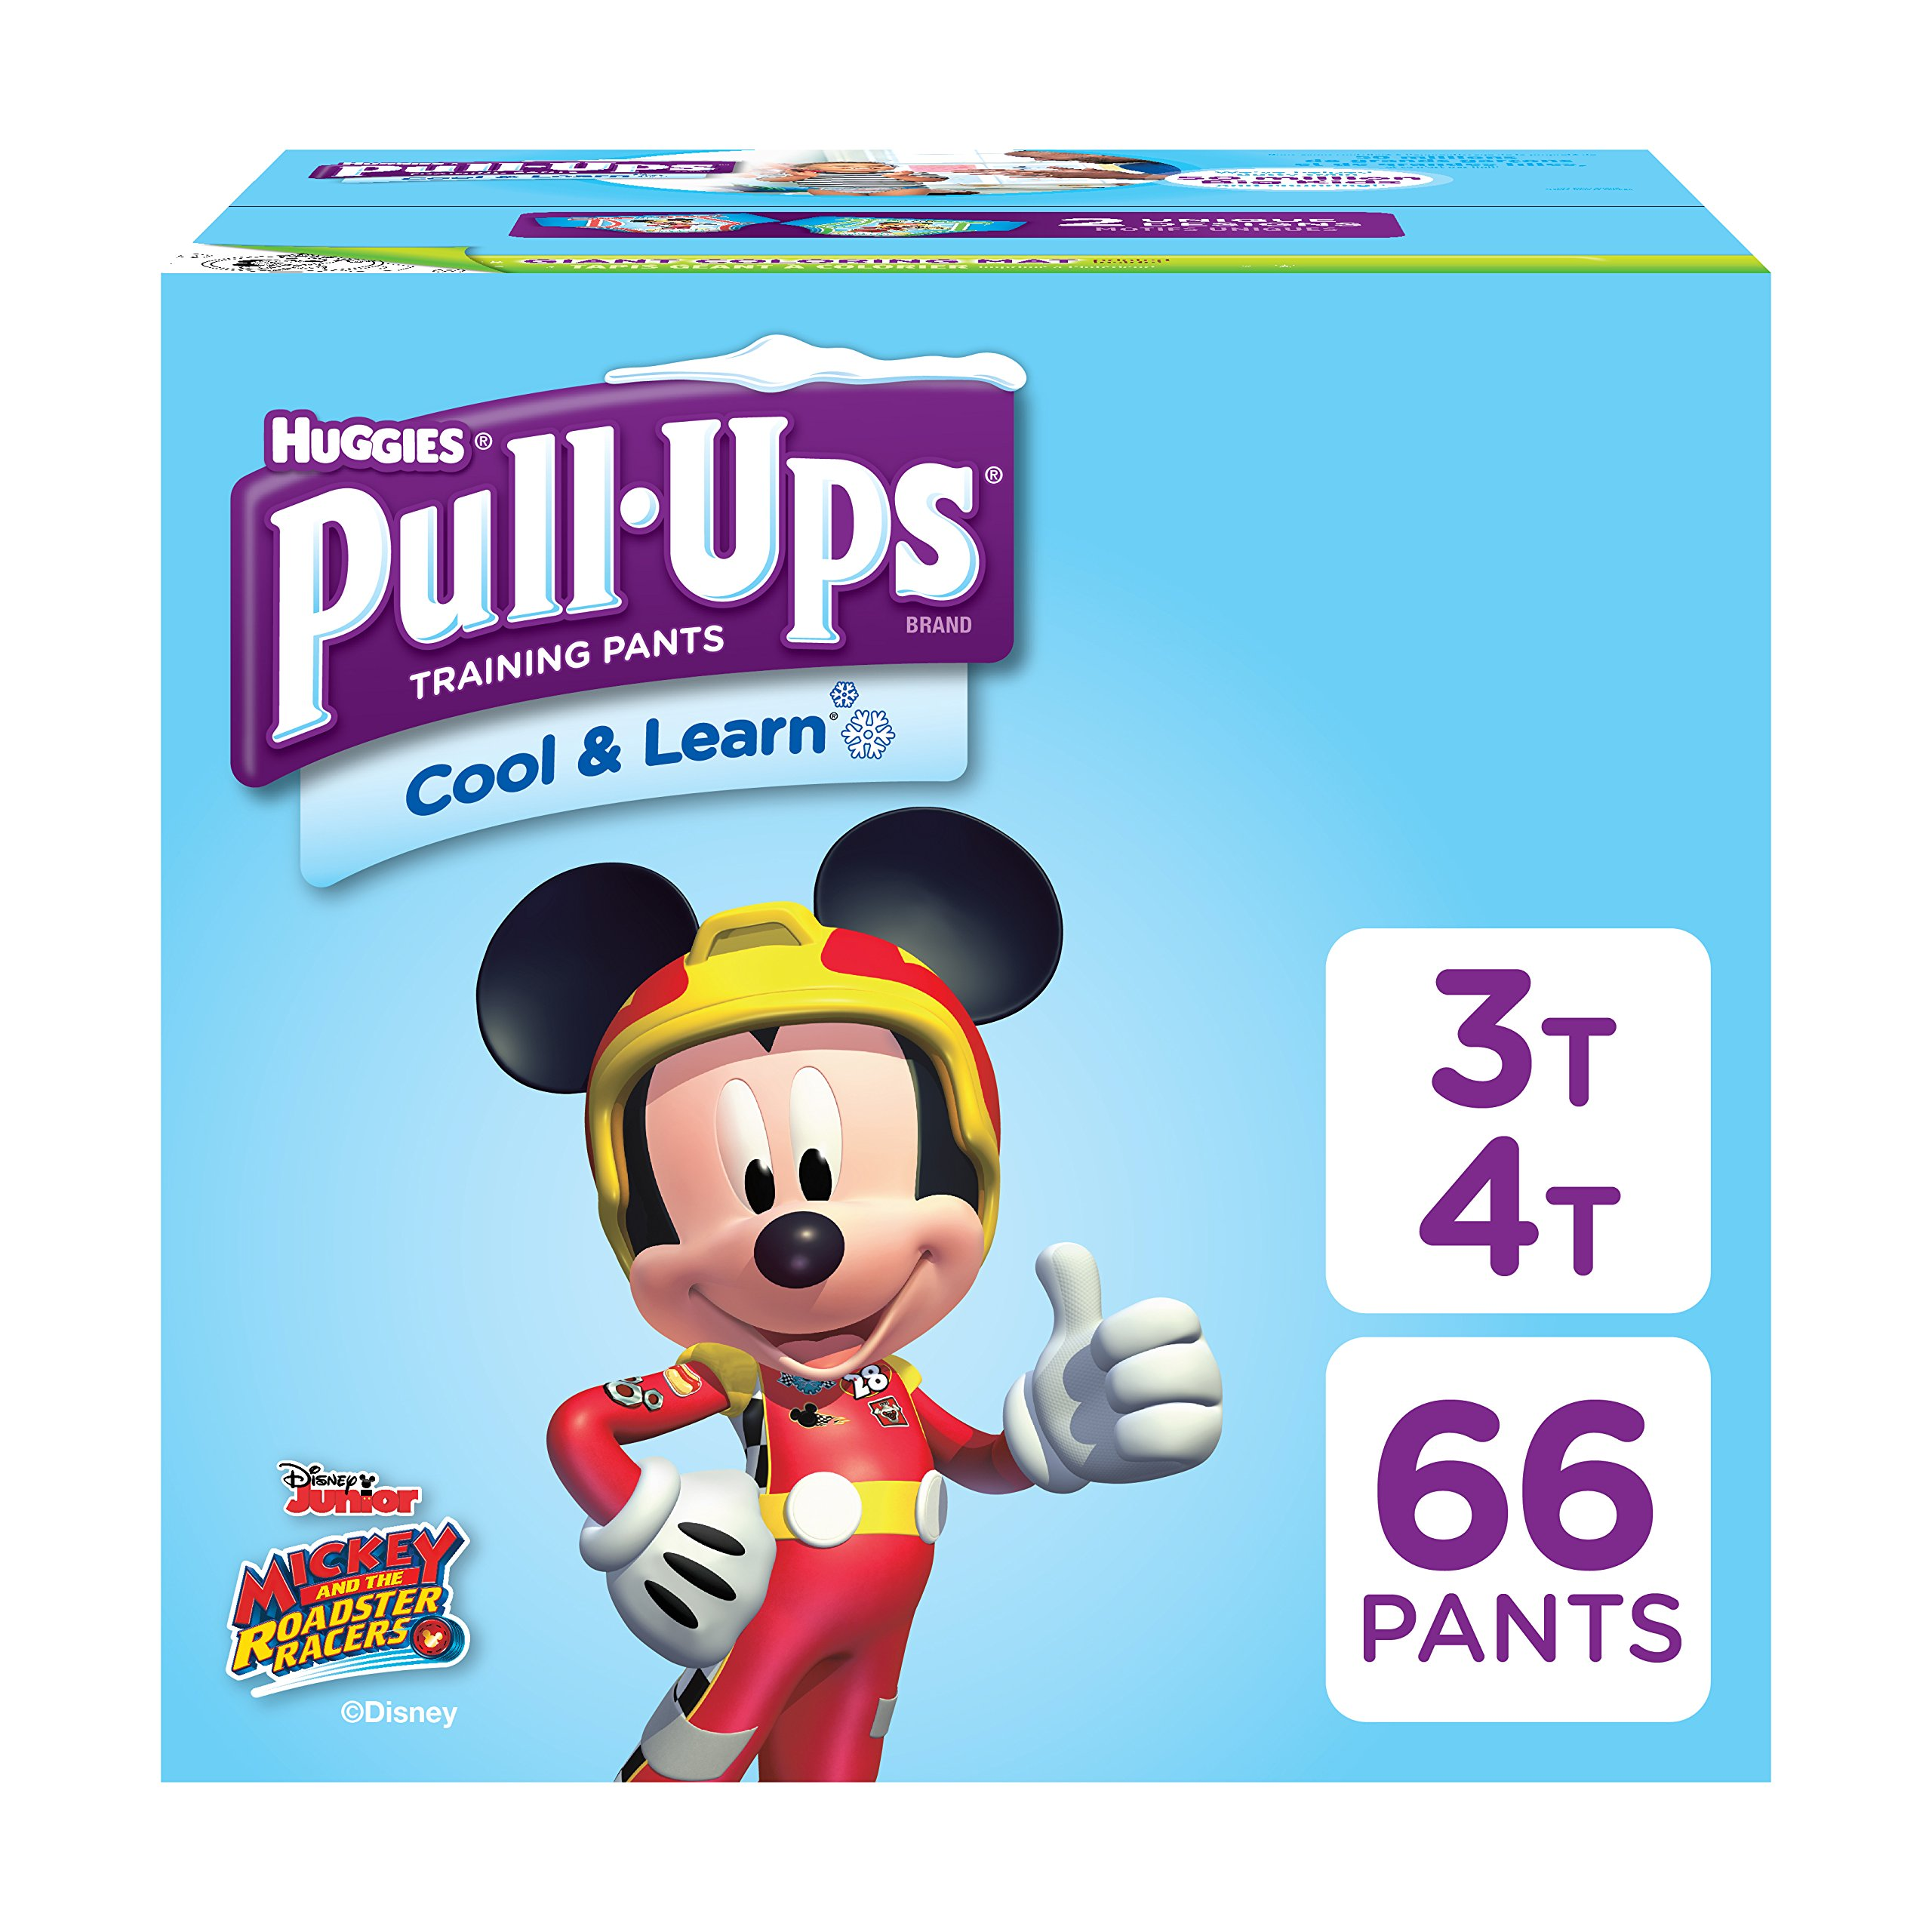 Pull-Ups Cool & Learn, 3T-4T (32-40 lb.), 66 Ct. Potty Training Pants for Boys, Disposable Potty Training Pants for Toddler Boys (Packaging May Vary)